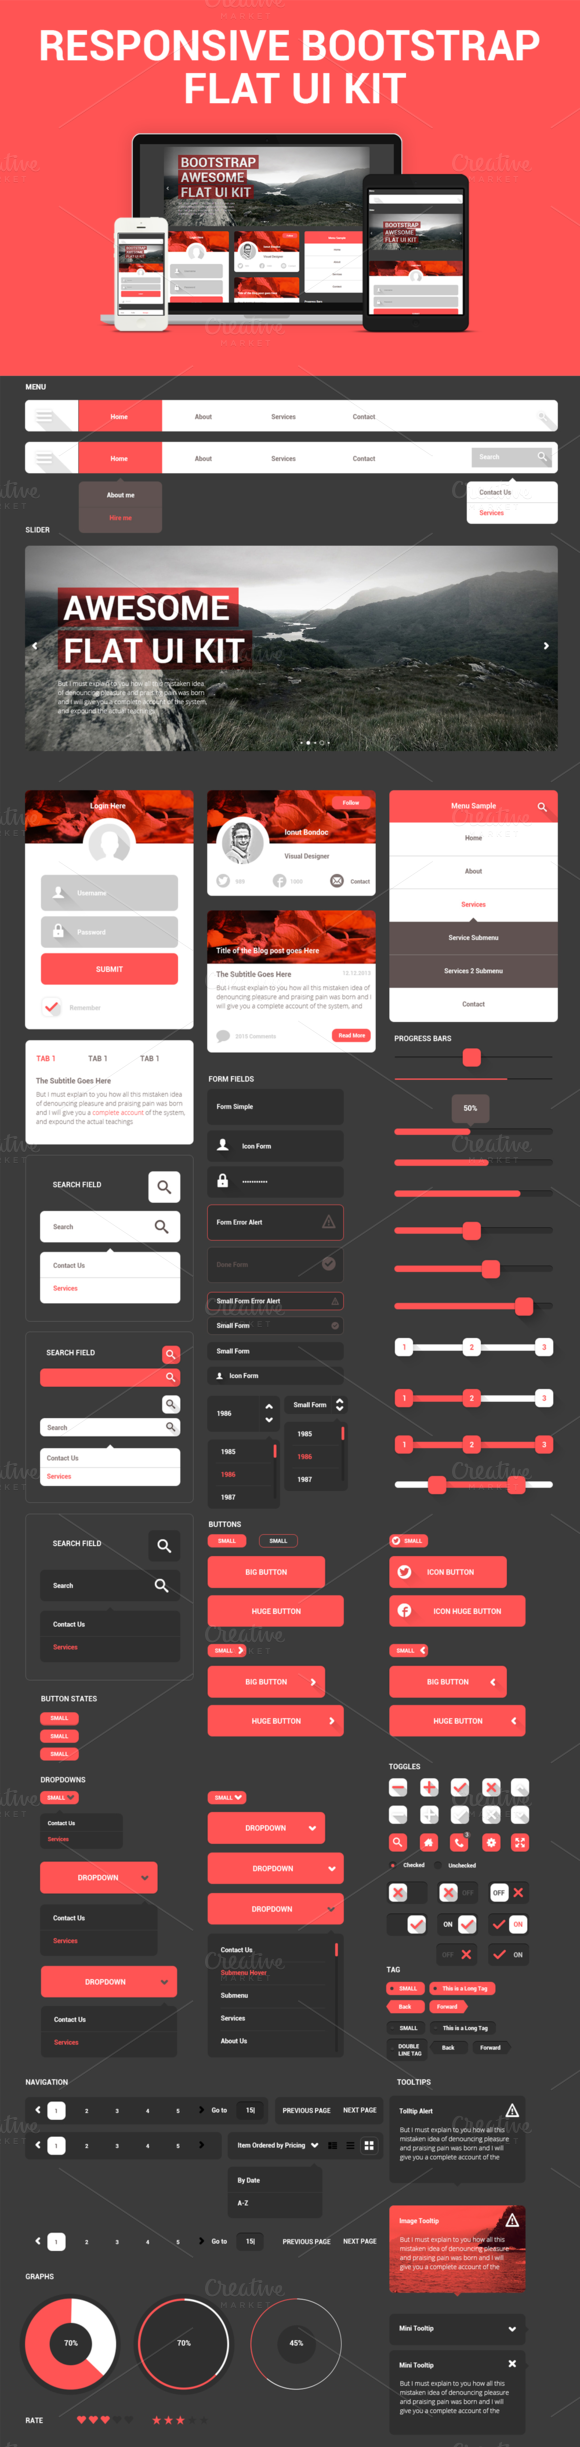 27 Responsive PHP website templates free download | 27 Responsive ...